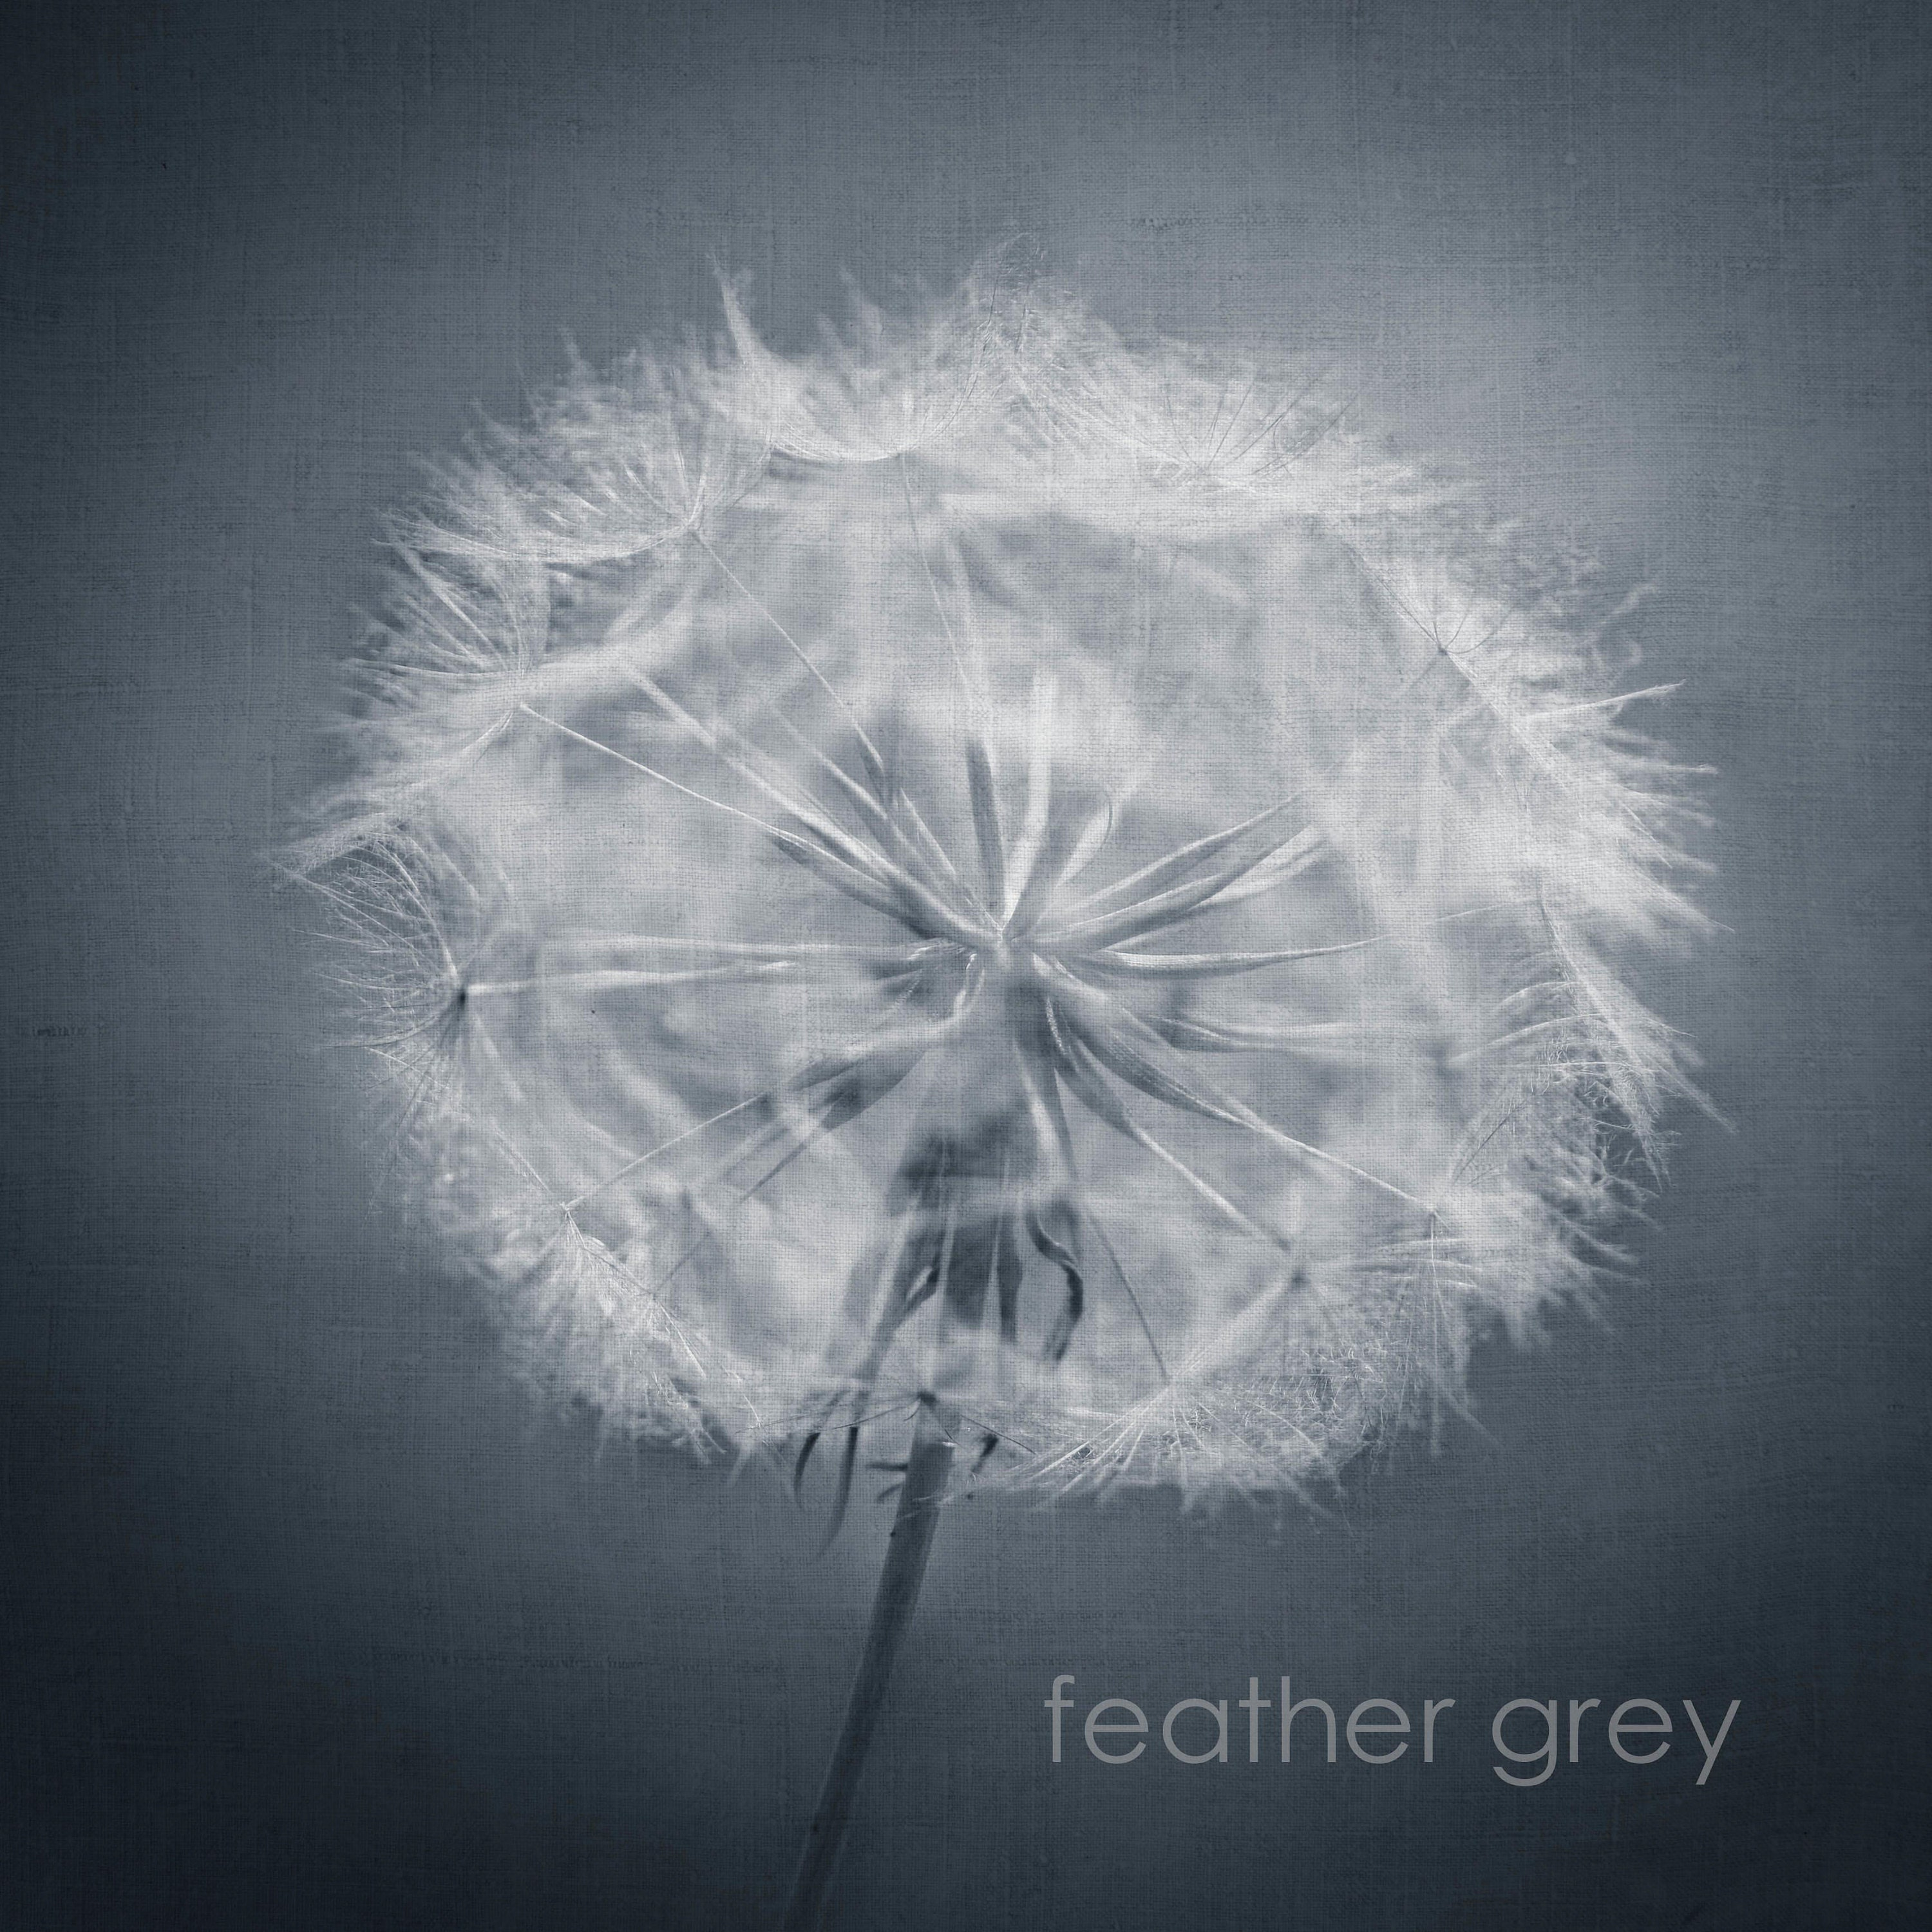 gardening gift- black and white fine art print of dandelion clock seed head- available in custom sizes and unframed or ready to hang